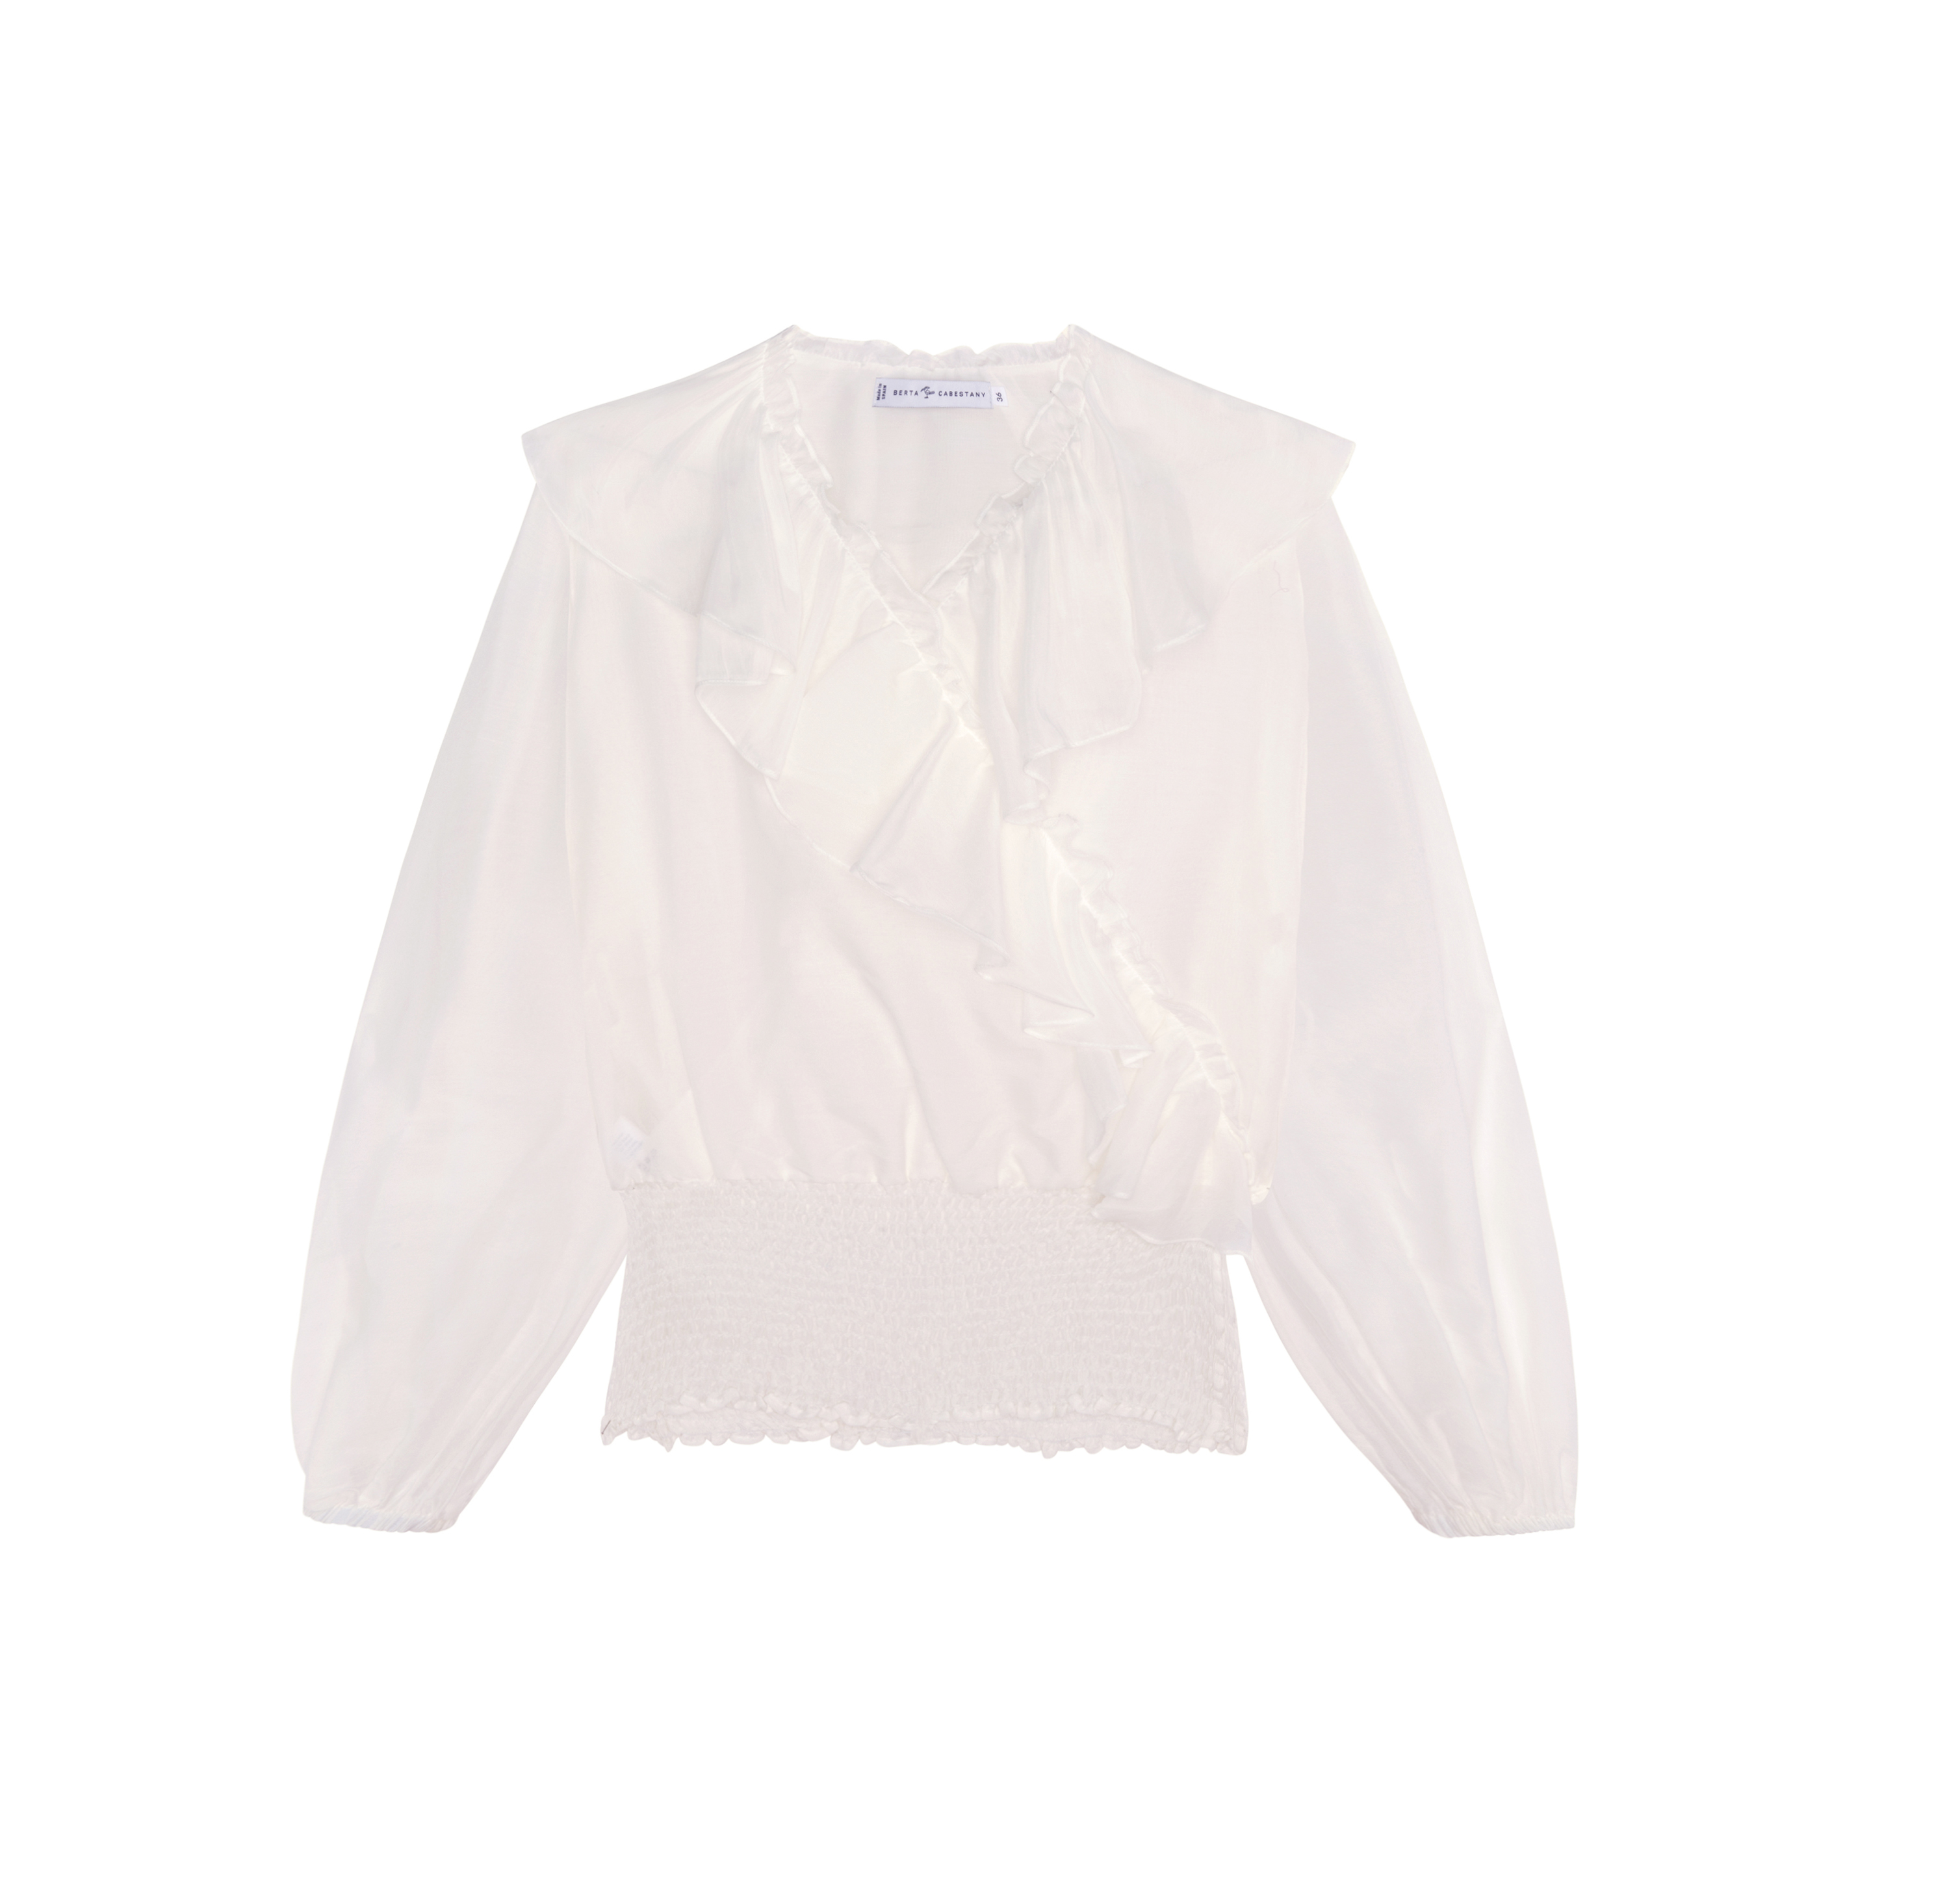 Rita Blouse - White by Berta Cabestany on curated-crowd.com